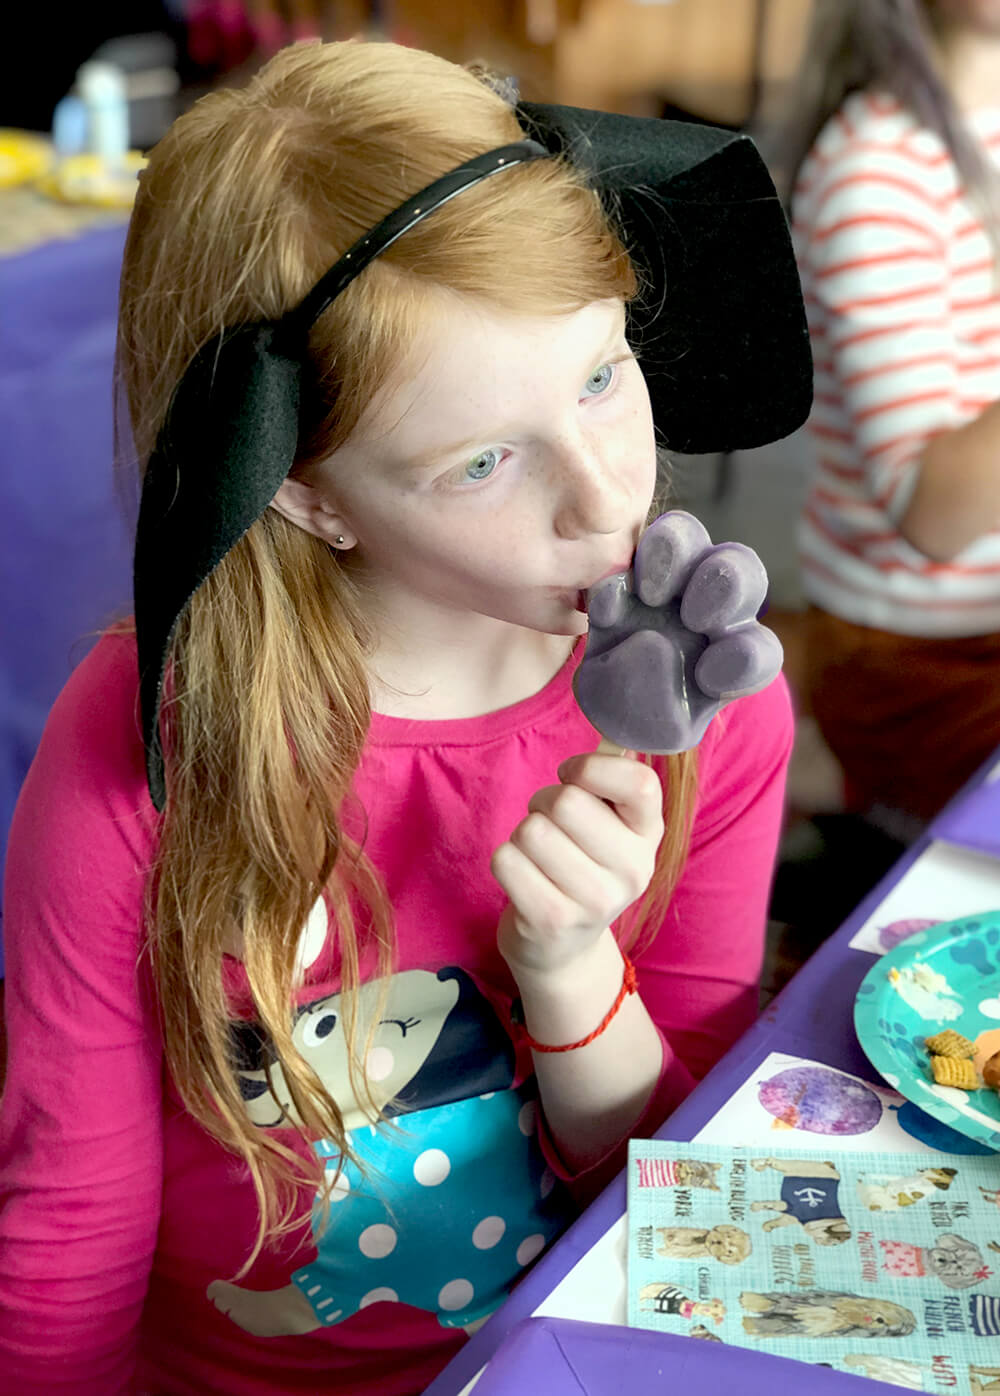 Girl eating berry pupsicles - Dog Themed Puppy Birthday Party Ideas